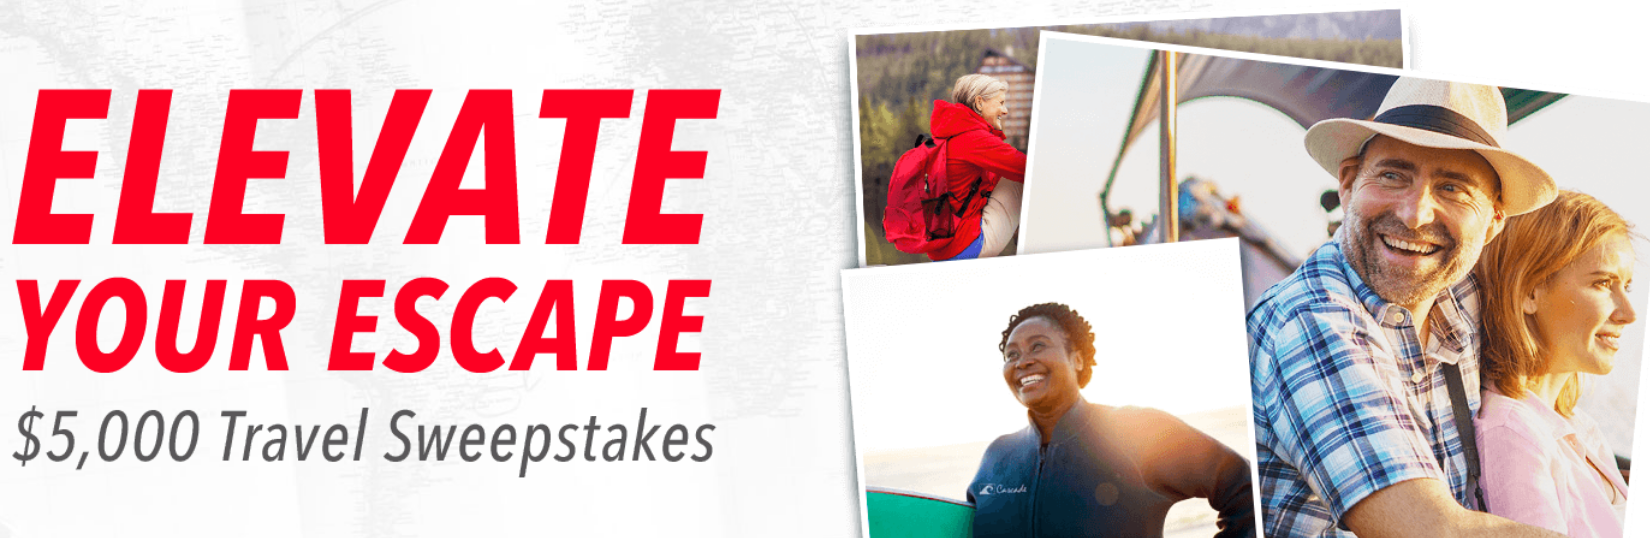 AARP'S Elevate Your Escape $5,000 Travel Sweepstakes!